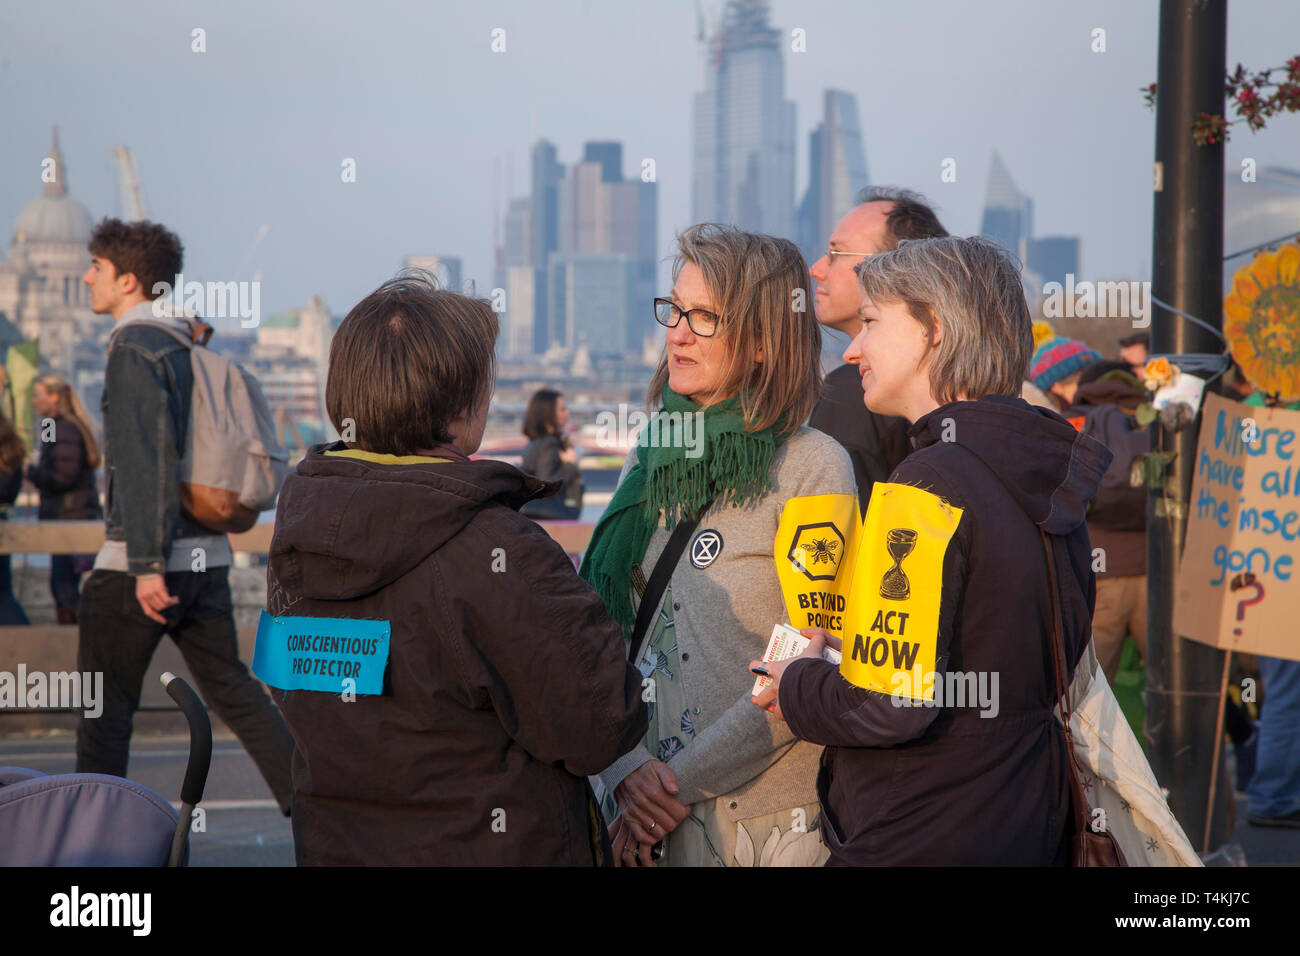 A 'Conscientious Protector' on Waterloo Bridge for the Extinction Rebellion demonstration - Stock Image